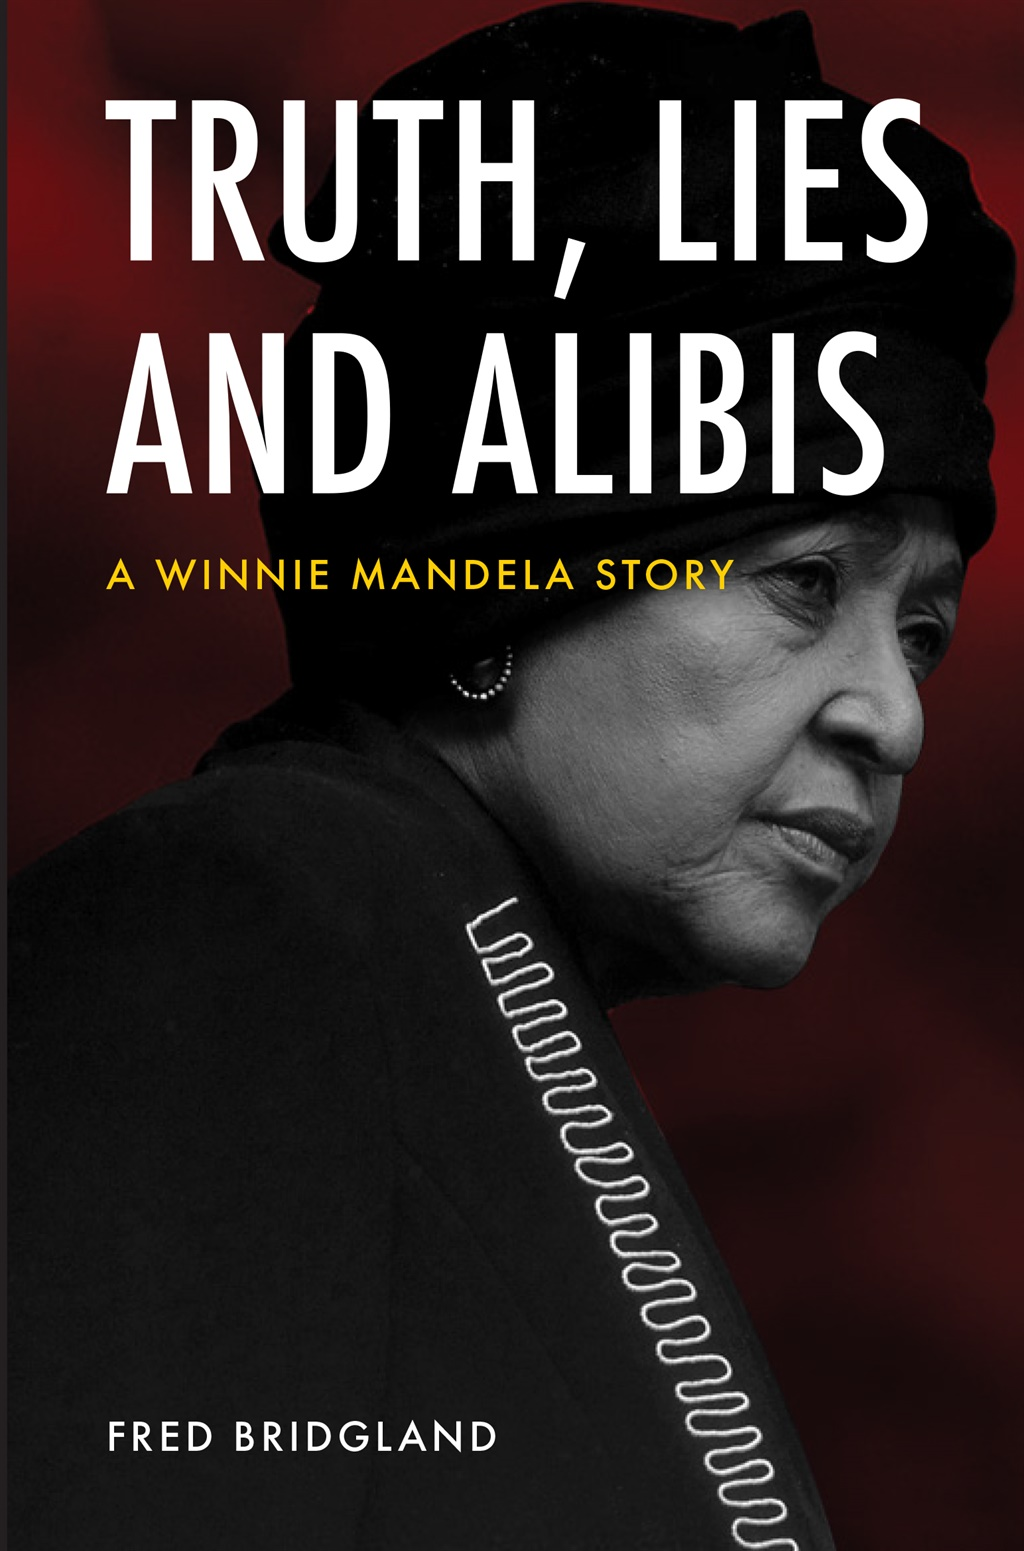 Truth, Lies and Alibis by Fred Brigdland, published by Tafelberg Publishers.